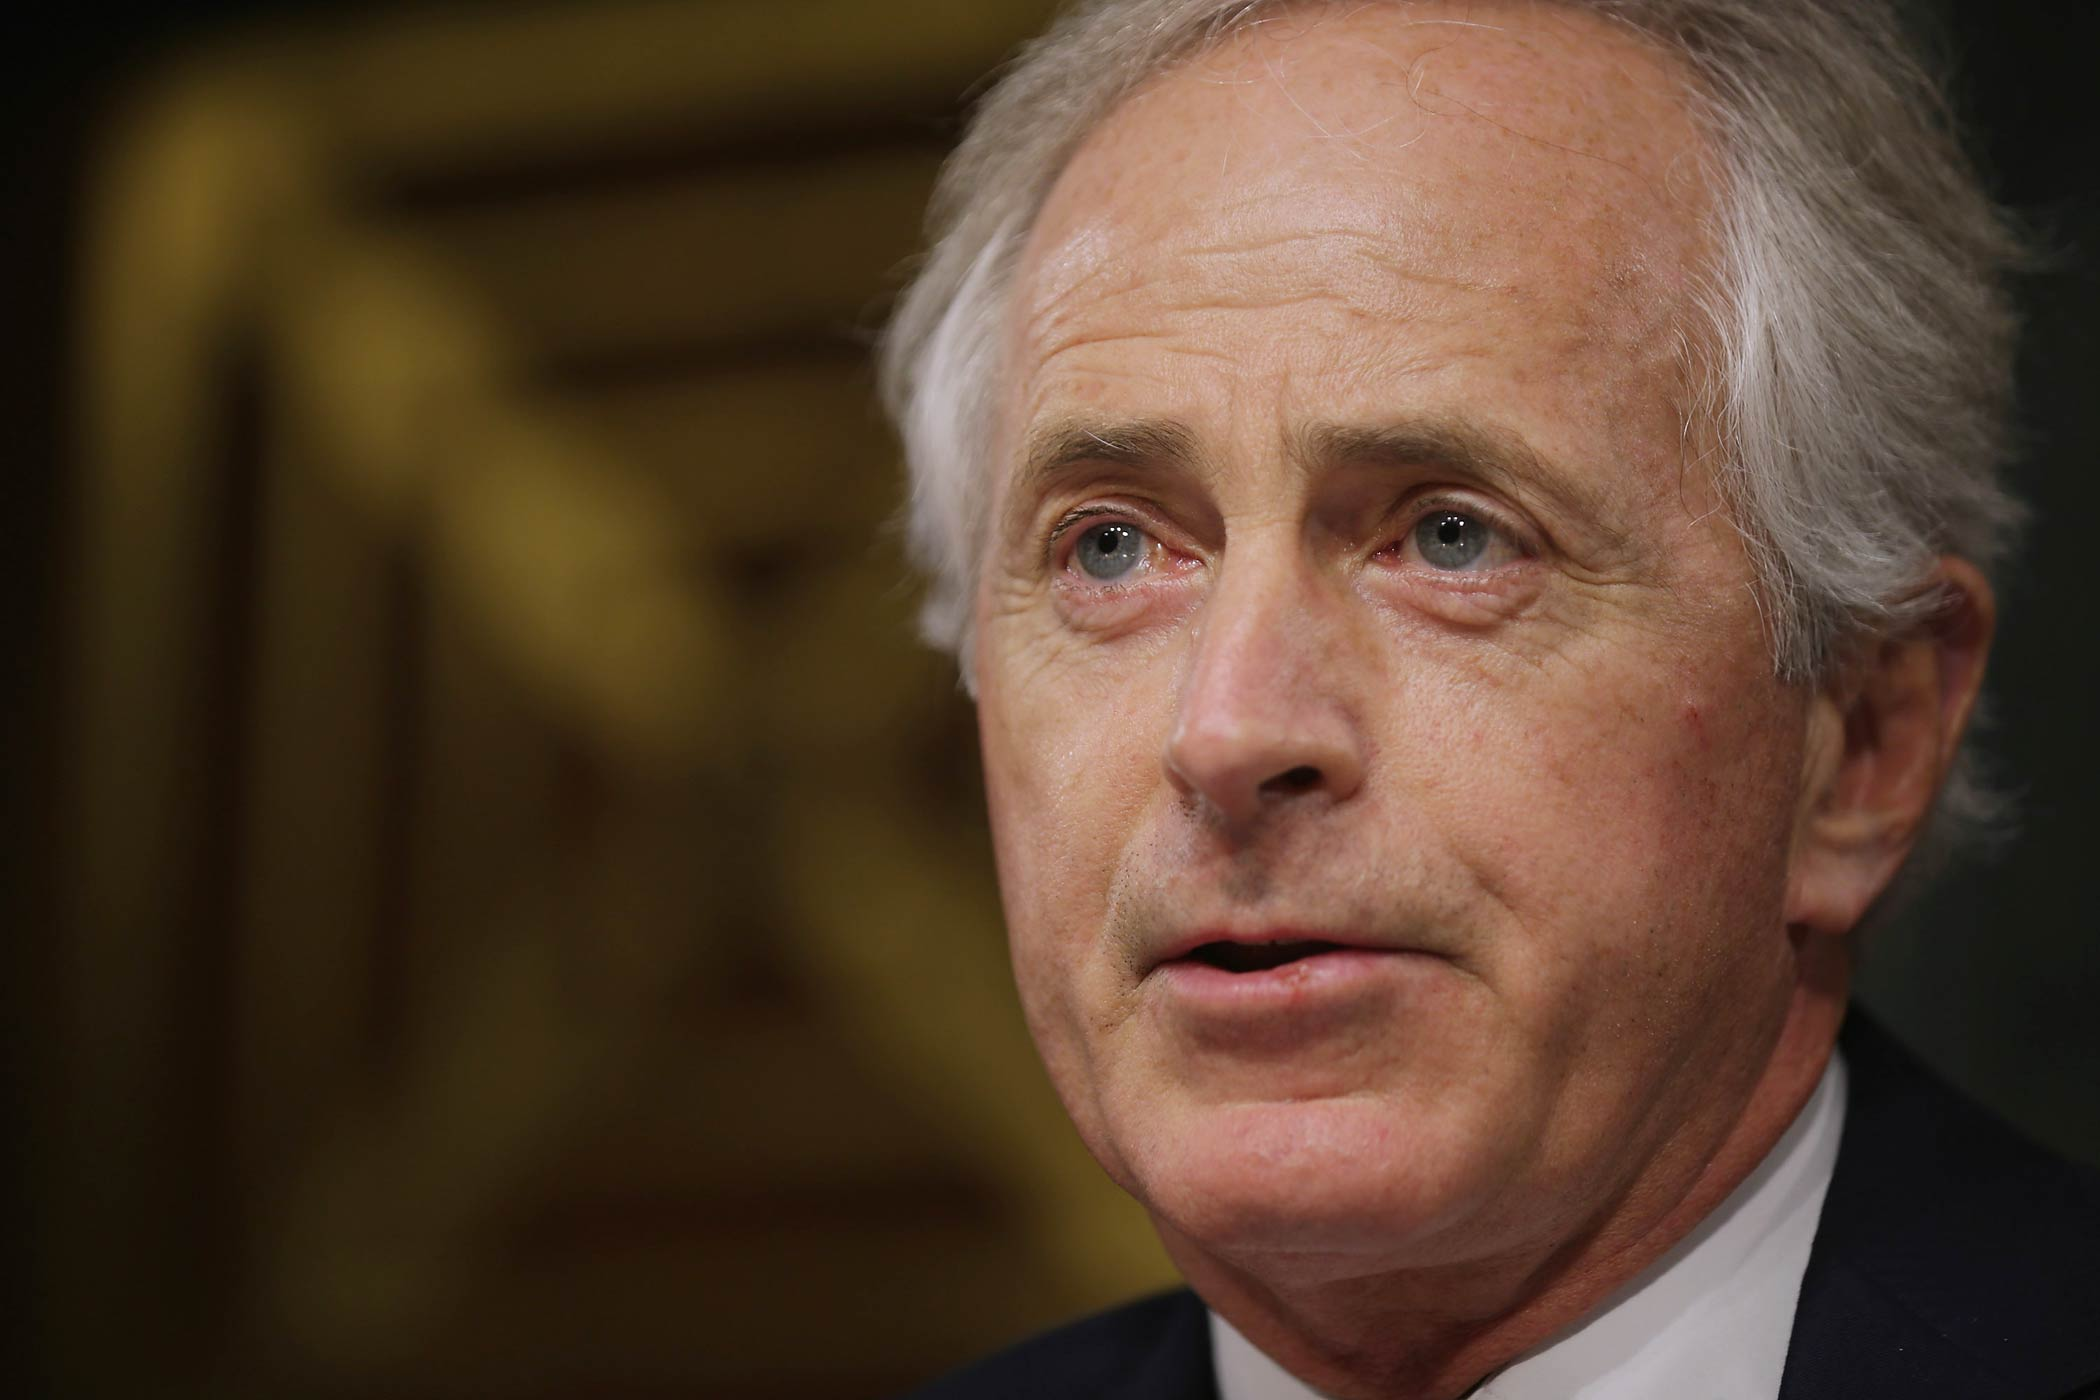 Sen. Bob Corker delivers opening remarks during a hearing in the Dirksen Senate Office Building on Capitol Hill on Dec. 9, 2014 in Washington, DC.